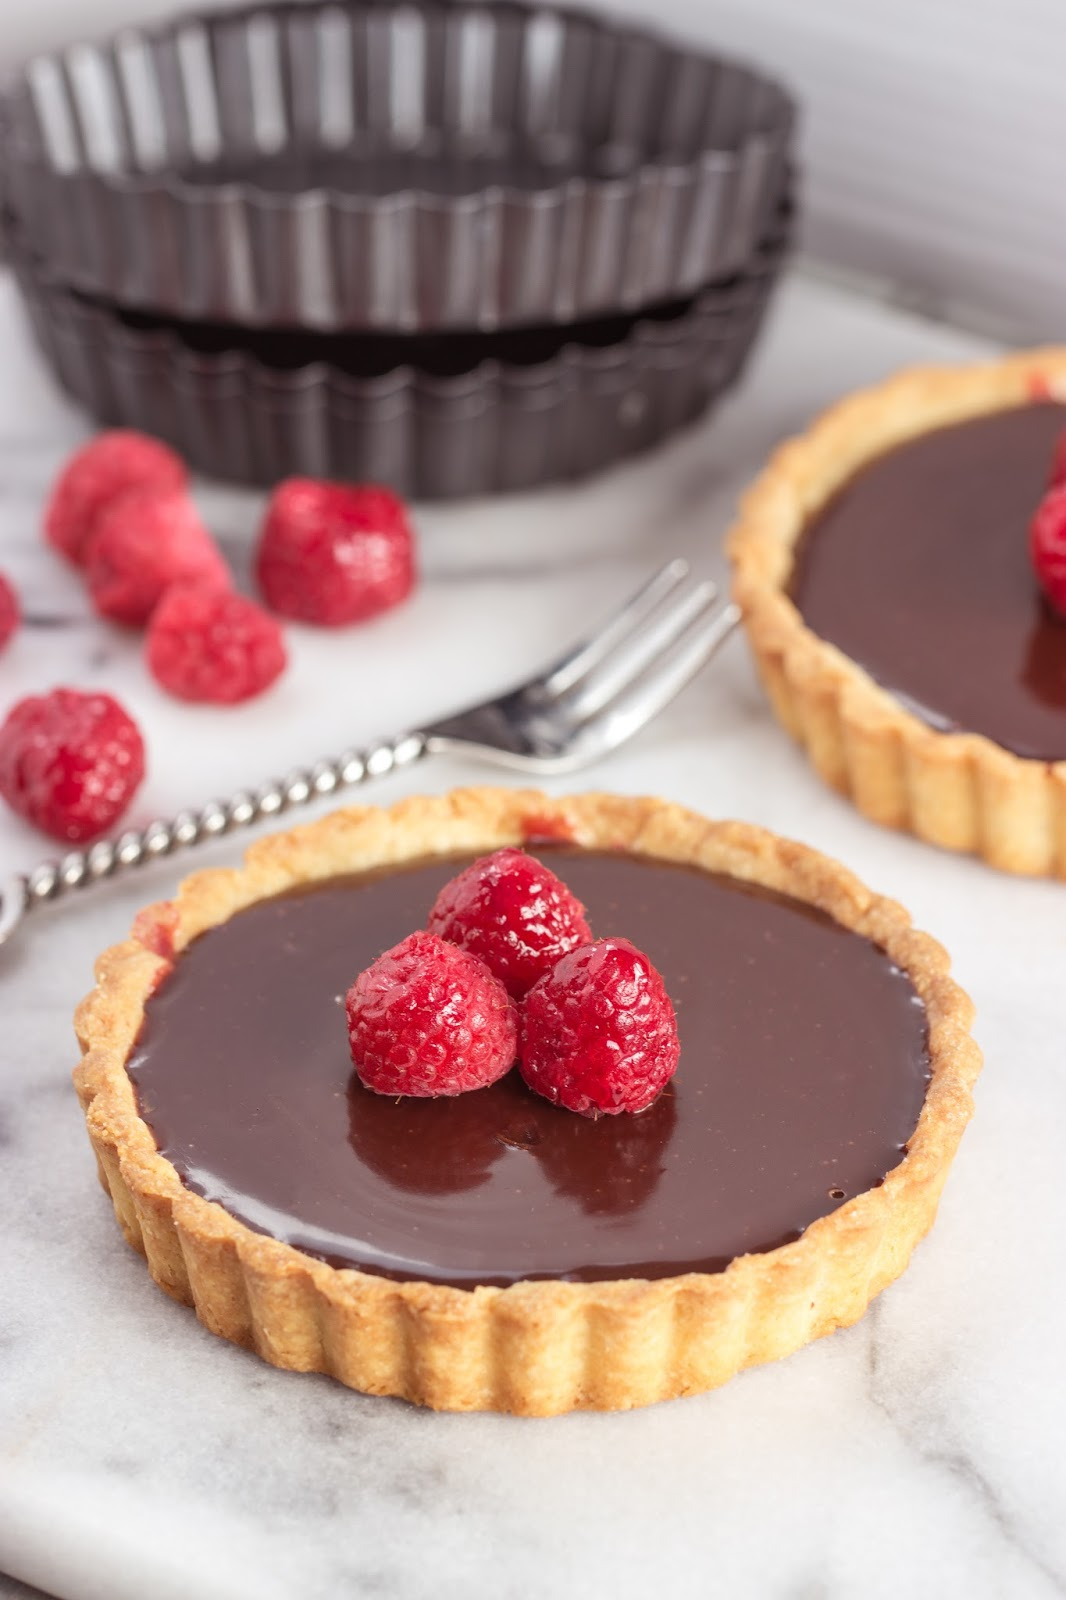 Raspberry Truffle Tart | Cooking on the Front Burner #chocolatetart